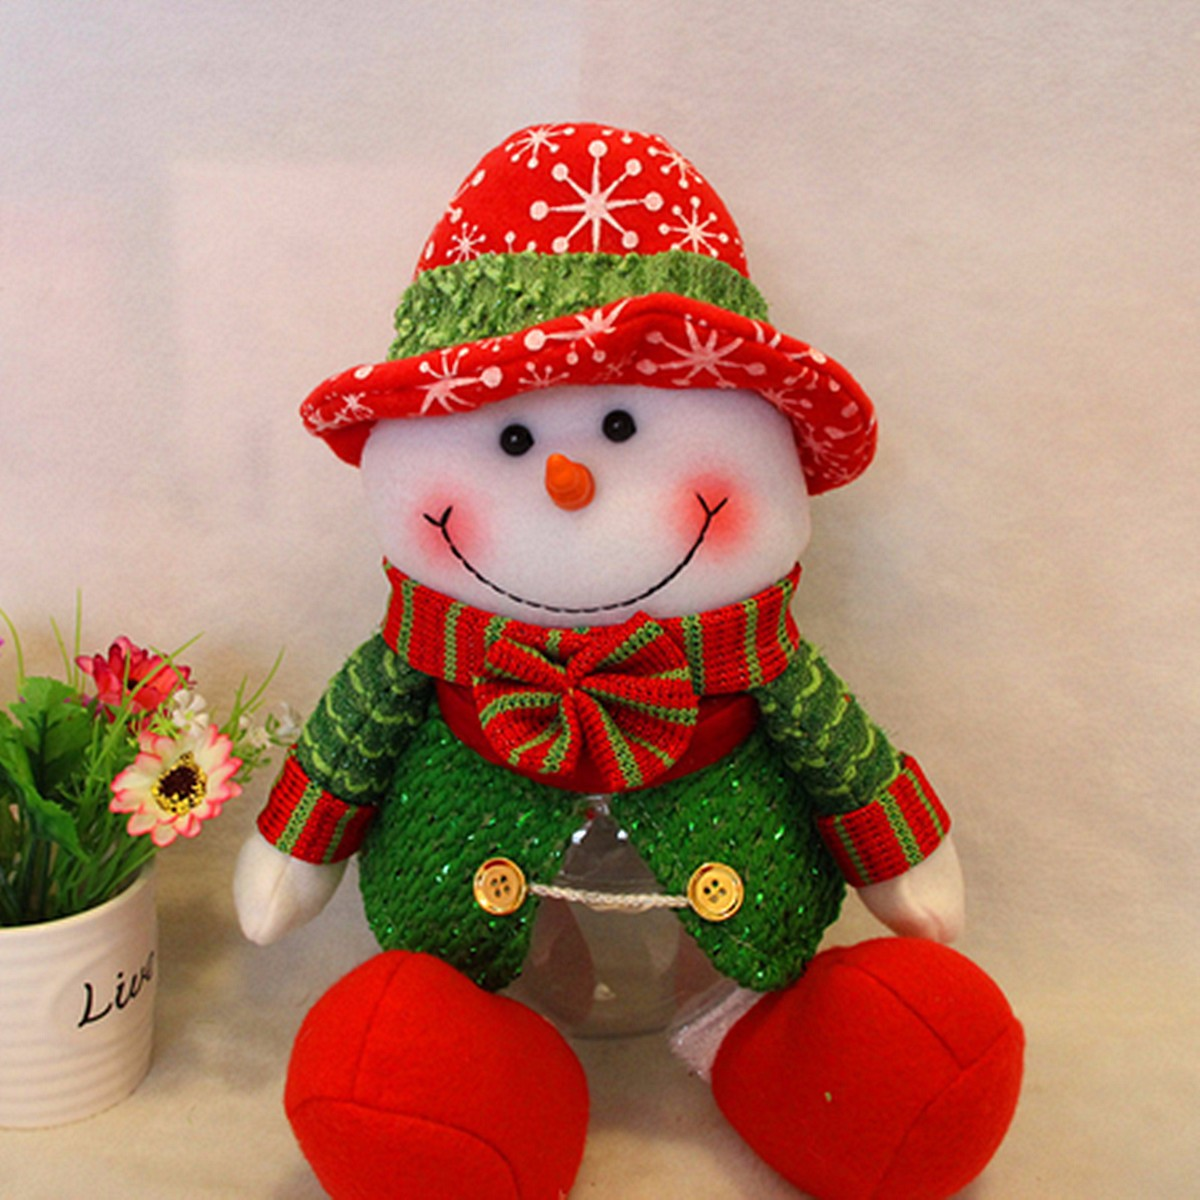 Lovely Snowman Santa Claus Candy Round Jar Bottle Christmas Kid Toy Doll Gift Decor - Photo: 5